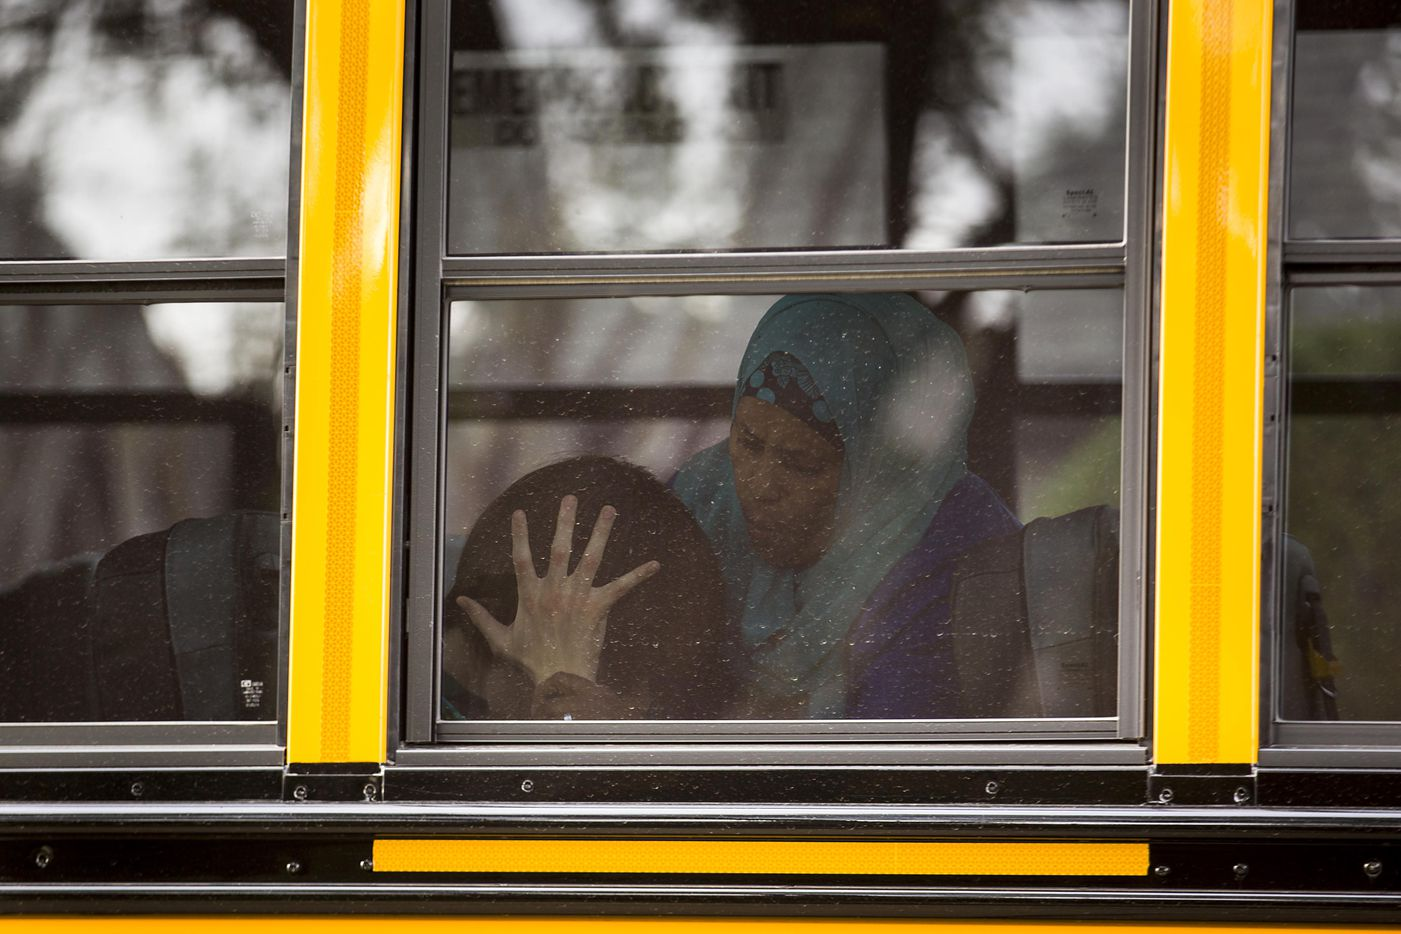 Kara Zartler covers her ears with her hands as the school bus pulls up in front of her family's home on Thursday, March 9, 2017, in Richardson. The 17-year old has severe autism and cerebral palsy. (Smiley N. Pool/The Dallas Morning News)